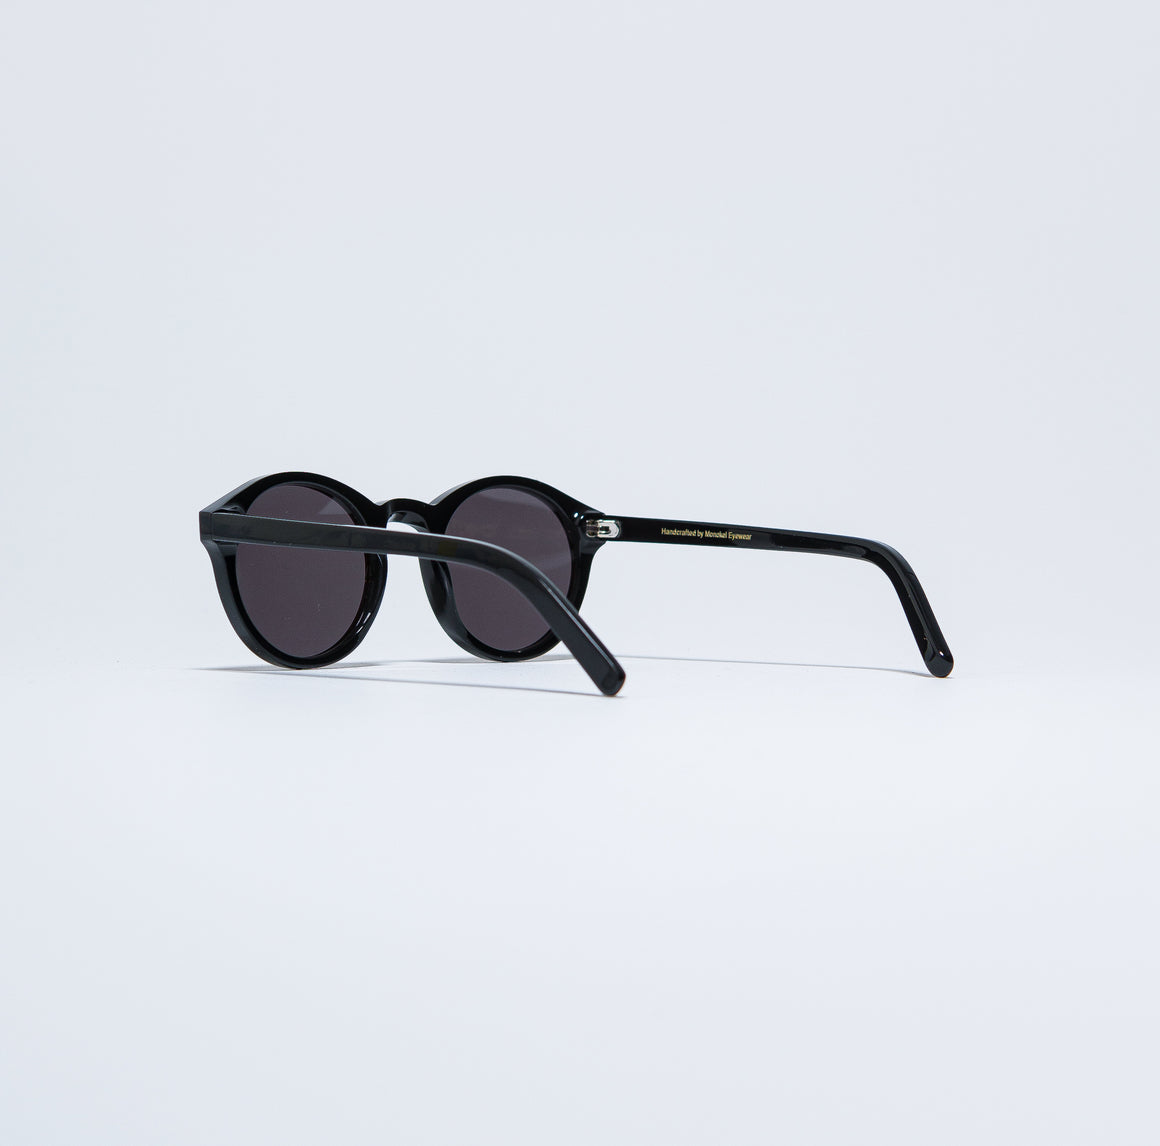 Monokel Eyewear - Barstow - Black/Solid Grey - Up There